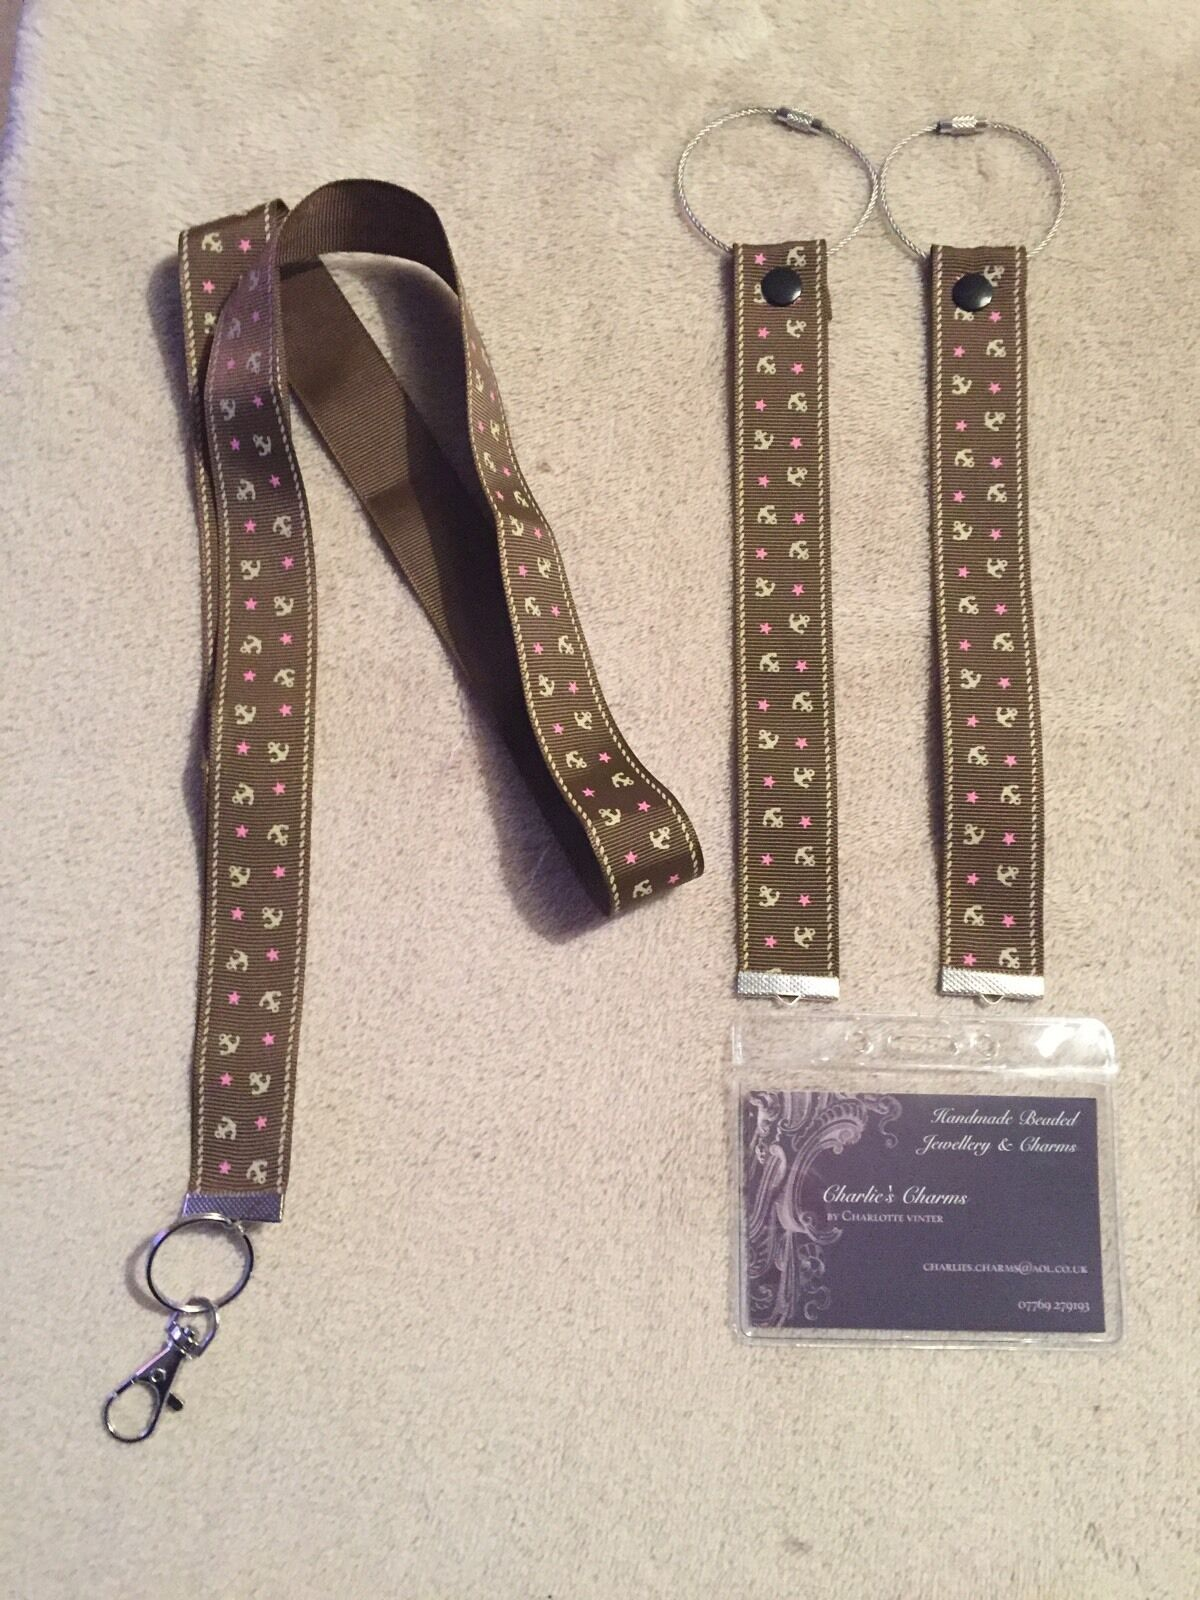 Cruise Card Holder With Matching Luggage Ribbons In Gorgeous Brown Anchor Print